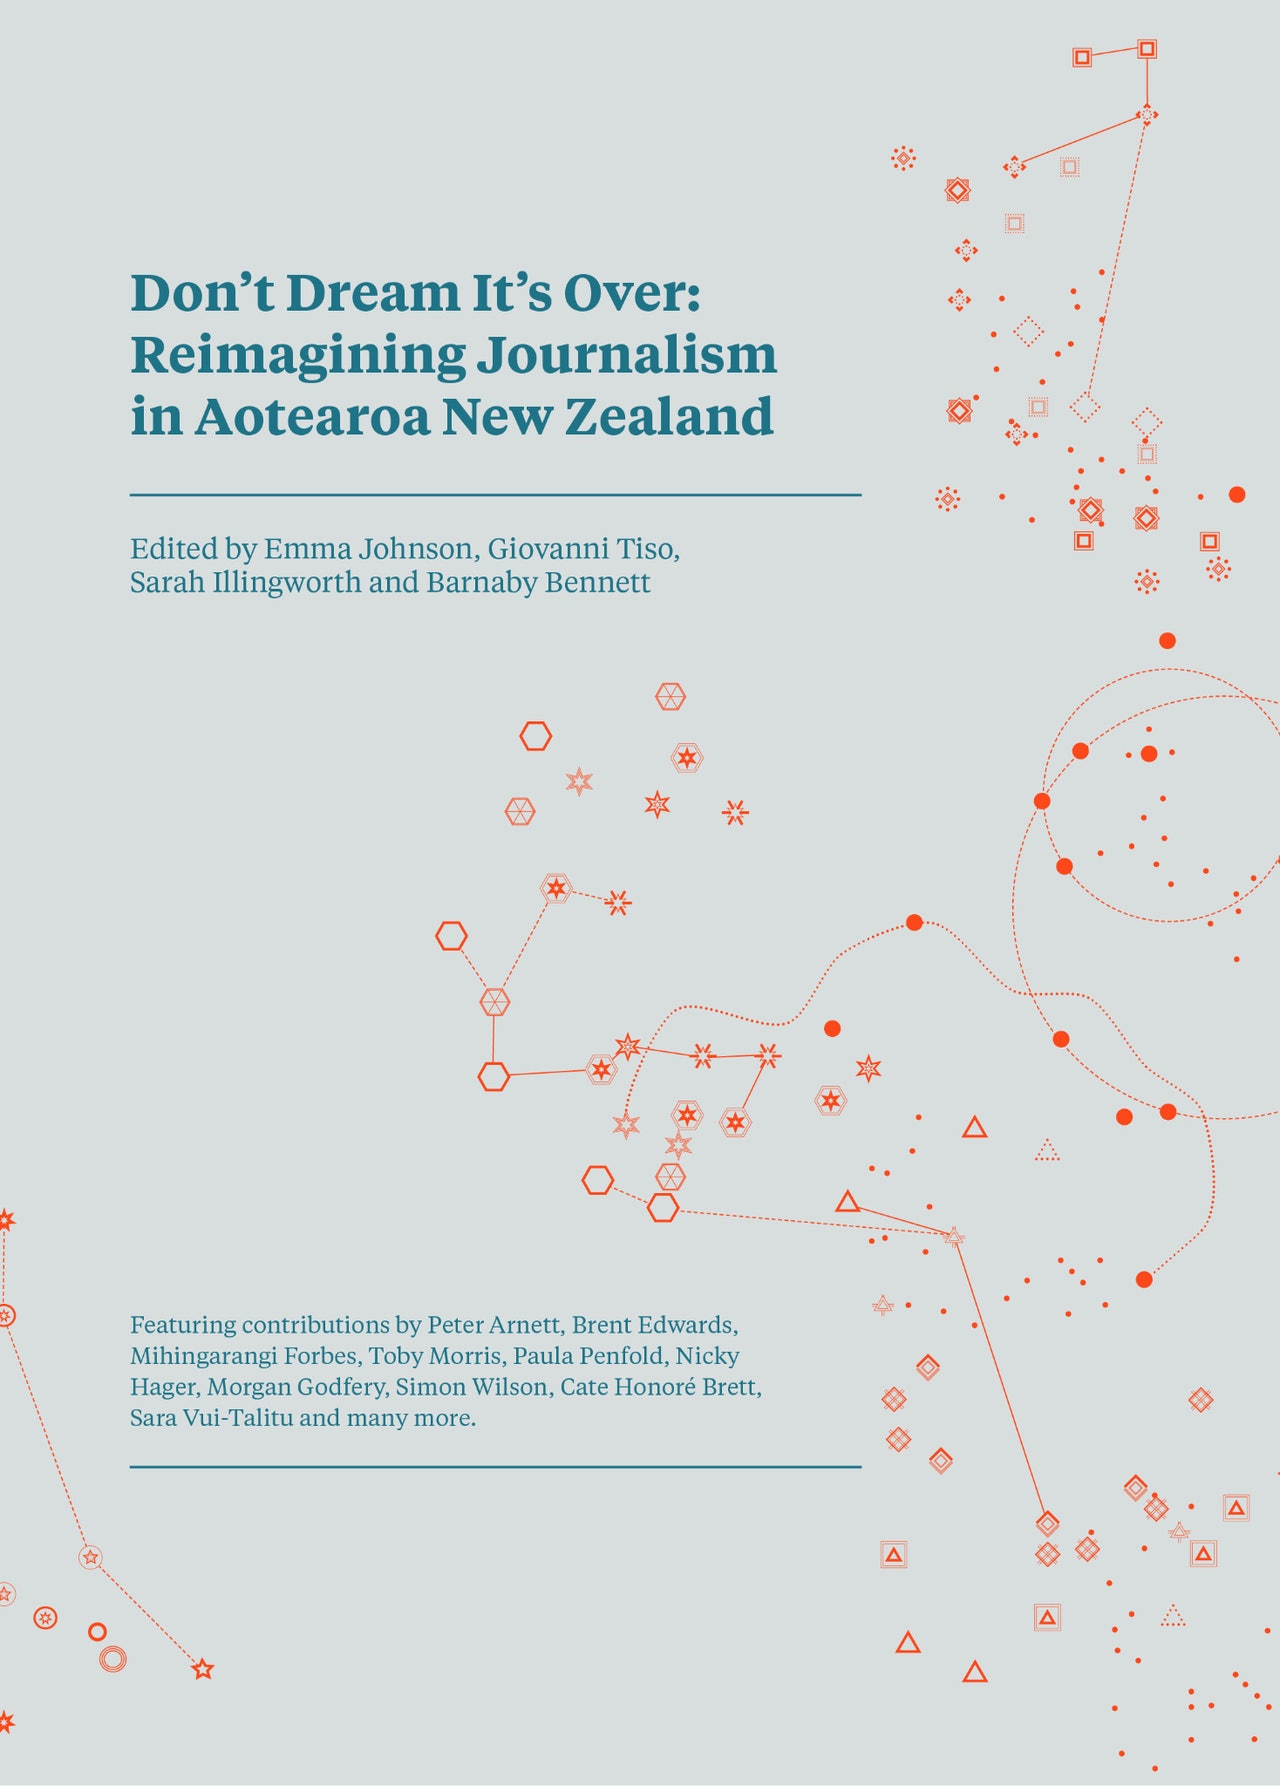 Don't Dream it's Over: Reimagining Journalism in Aotearoa New Zealand - ebook